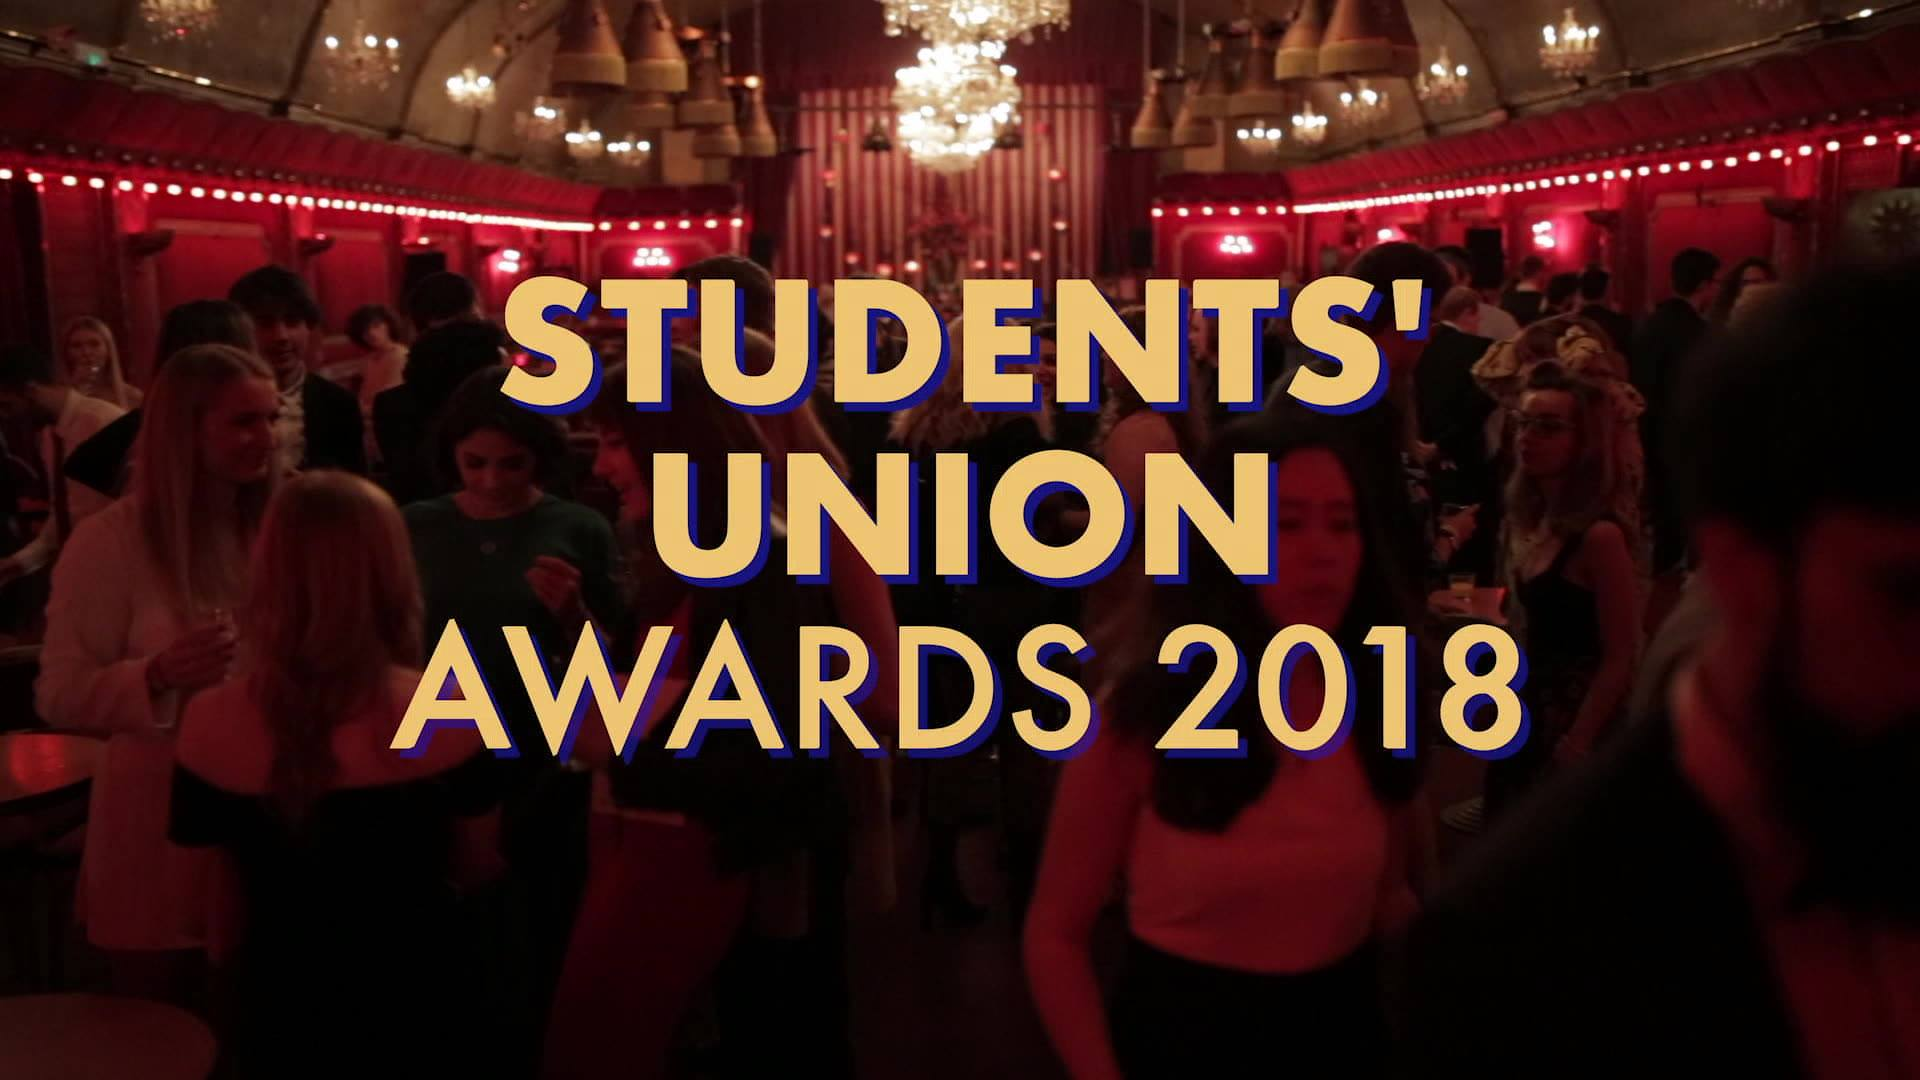 Students' Union Awards 2018